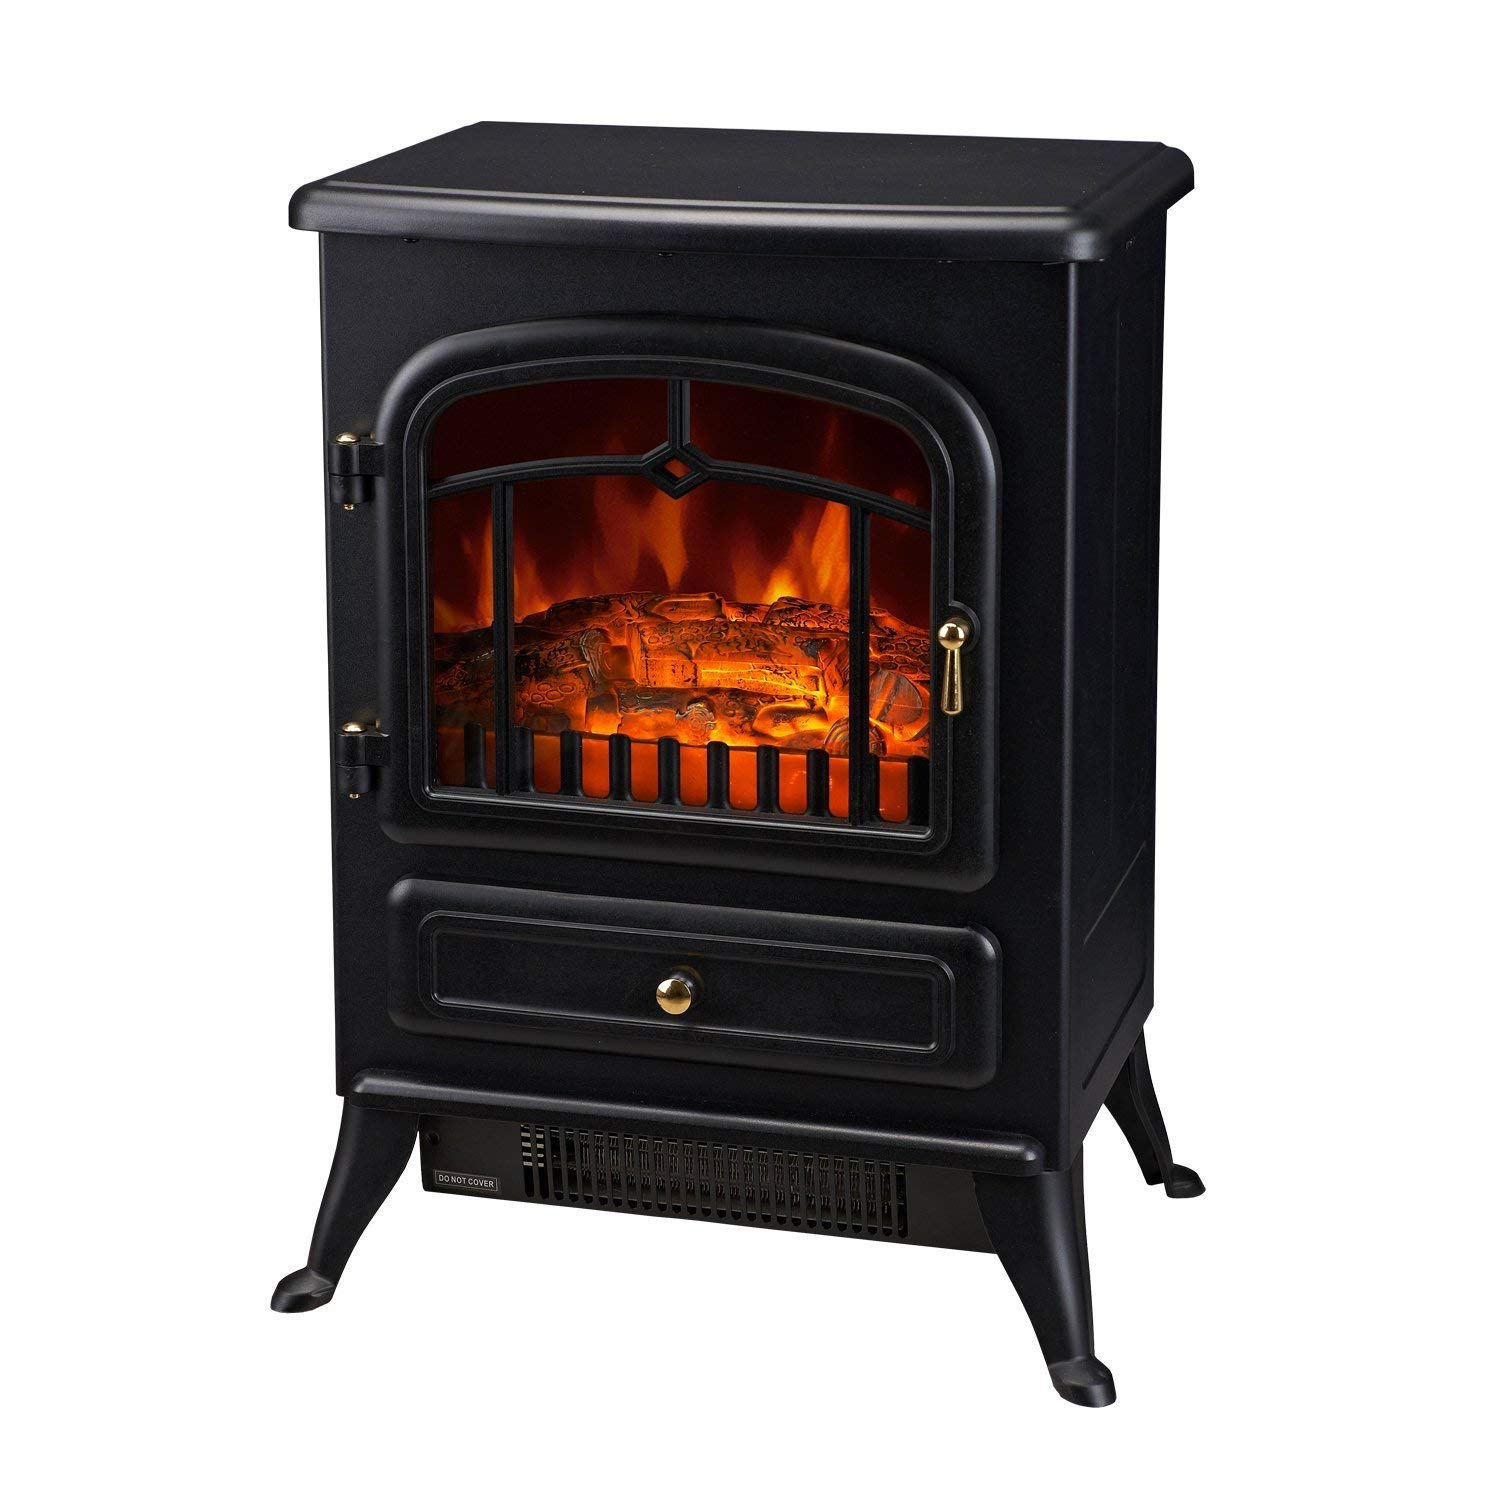 "Homcom 16"" 1500W Free Standing Electric Wood Stove Fireplace Heater"